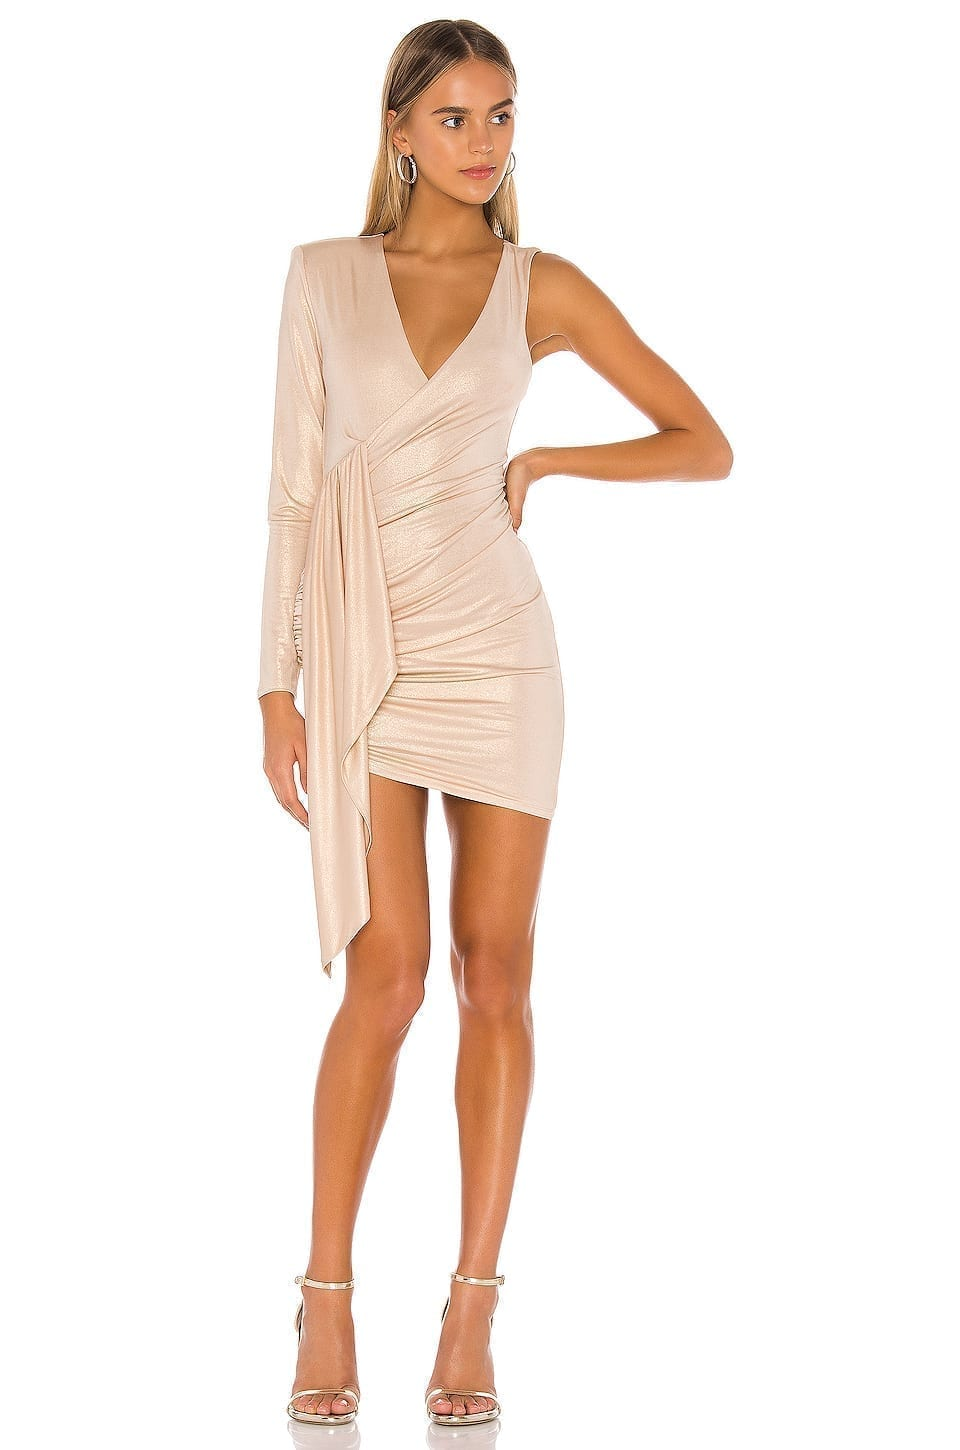 MICHAEL COSTELLO x REVOLVE Leona Mini Dress